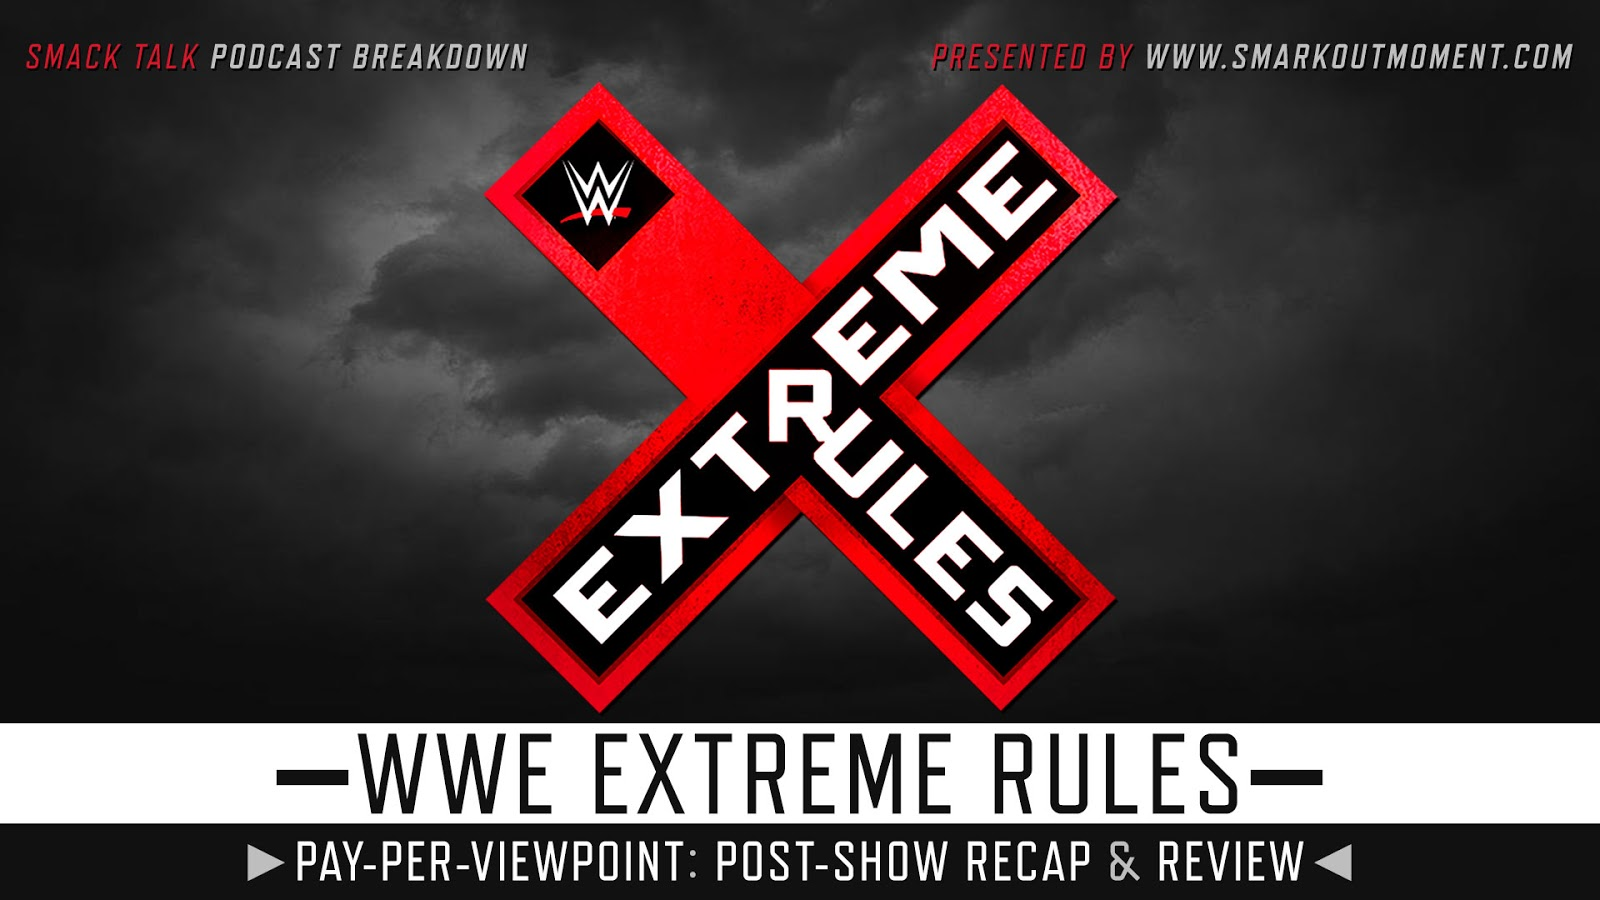 WWE Extreme Rules 2018 Recap and Review Podcast